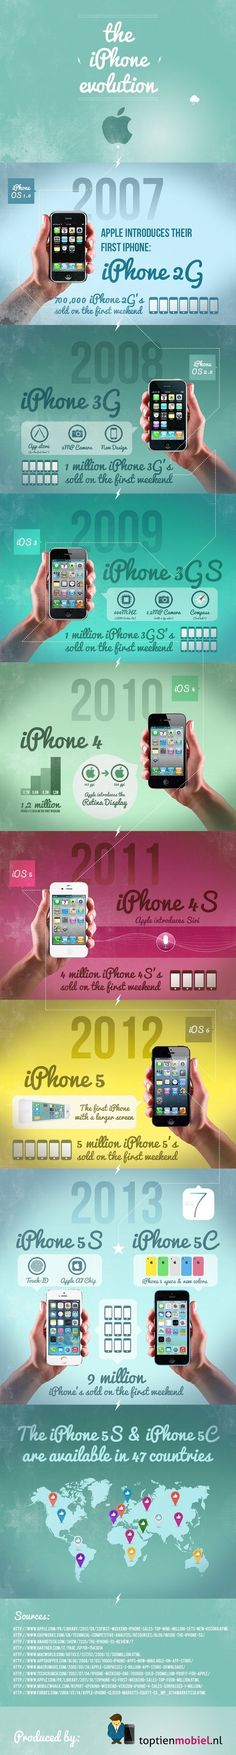 #Infographic: The evolution of the iPhone